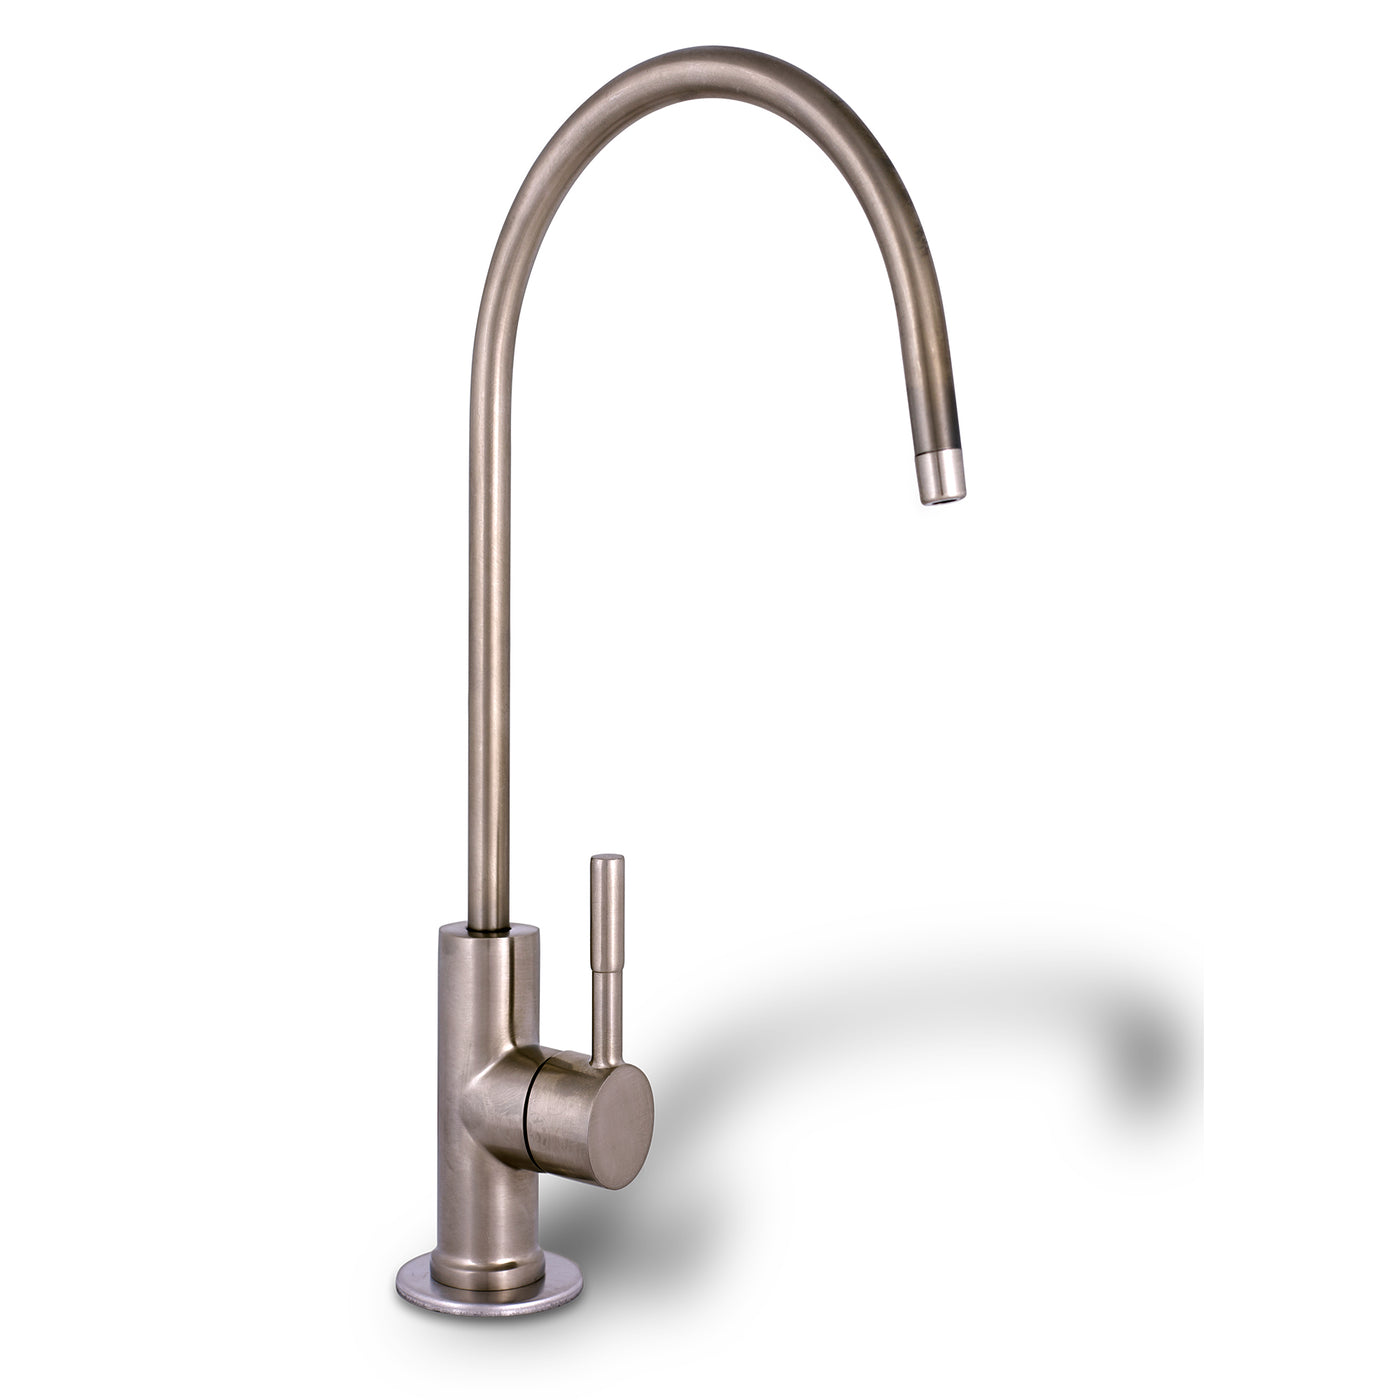 Brushed Nickel European High Spout Drinking Water Faucet | RONAQUA